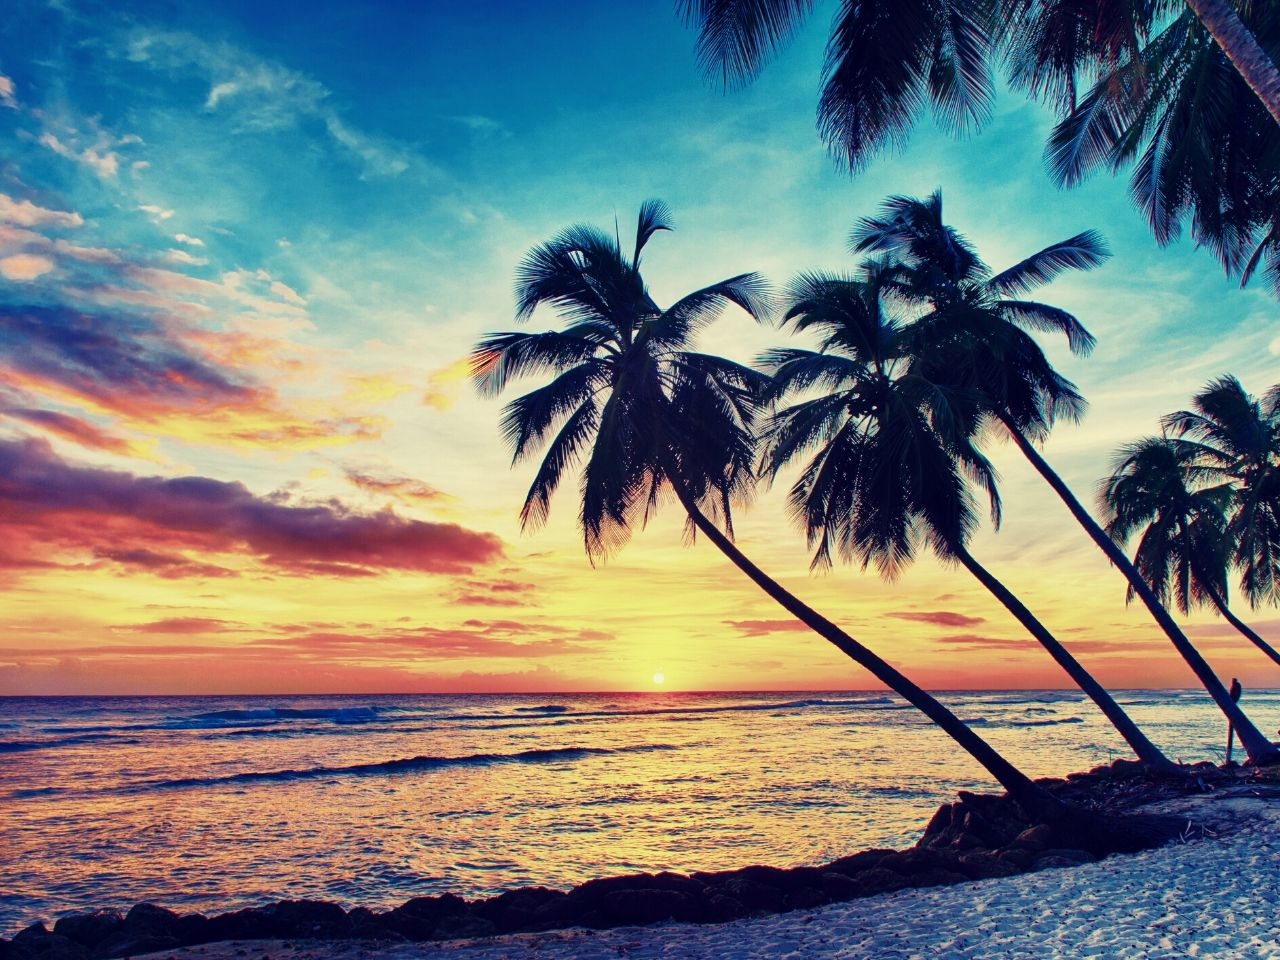 A typical sunset on Barbados #travelclans #beaches #caribbean